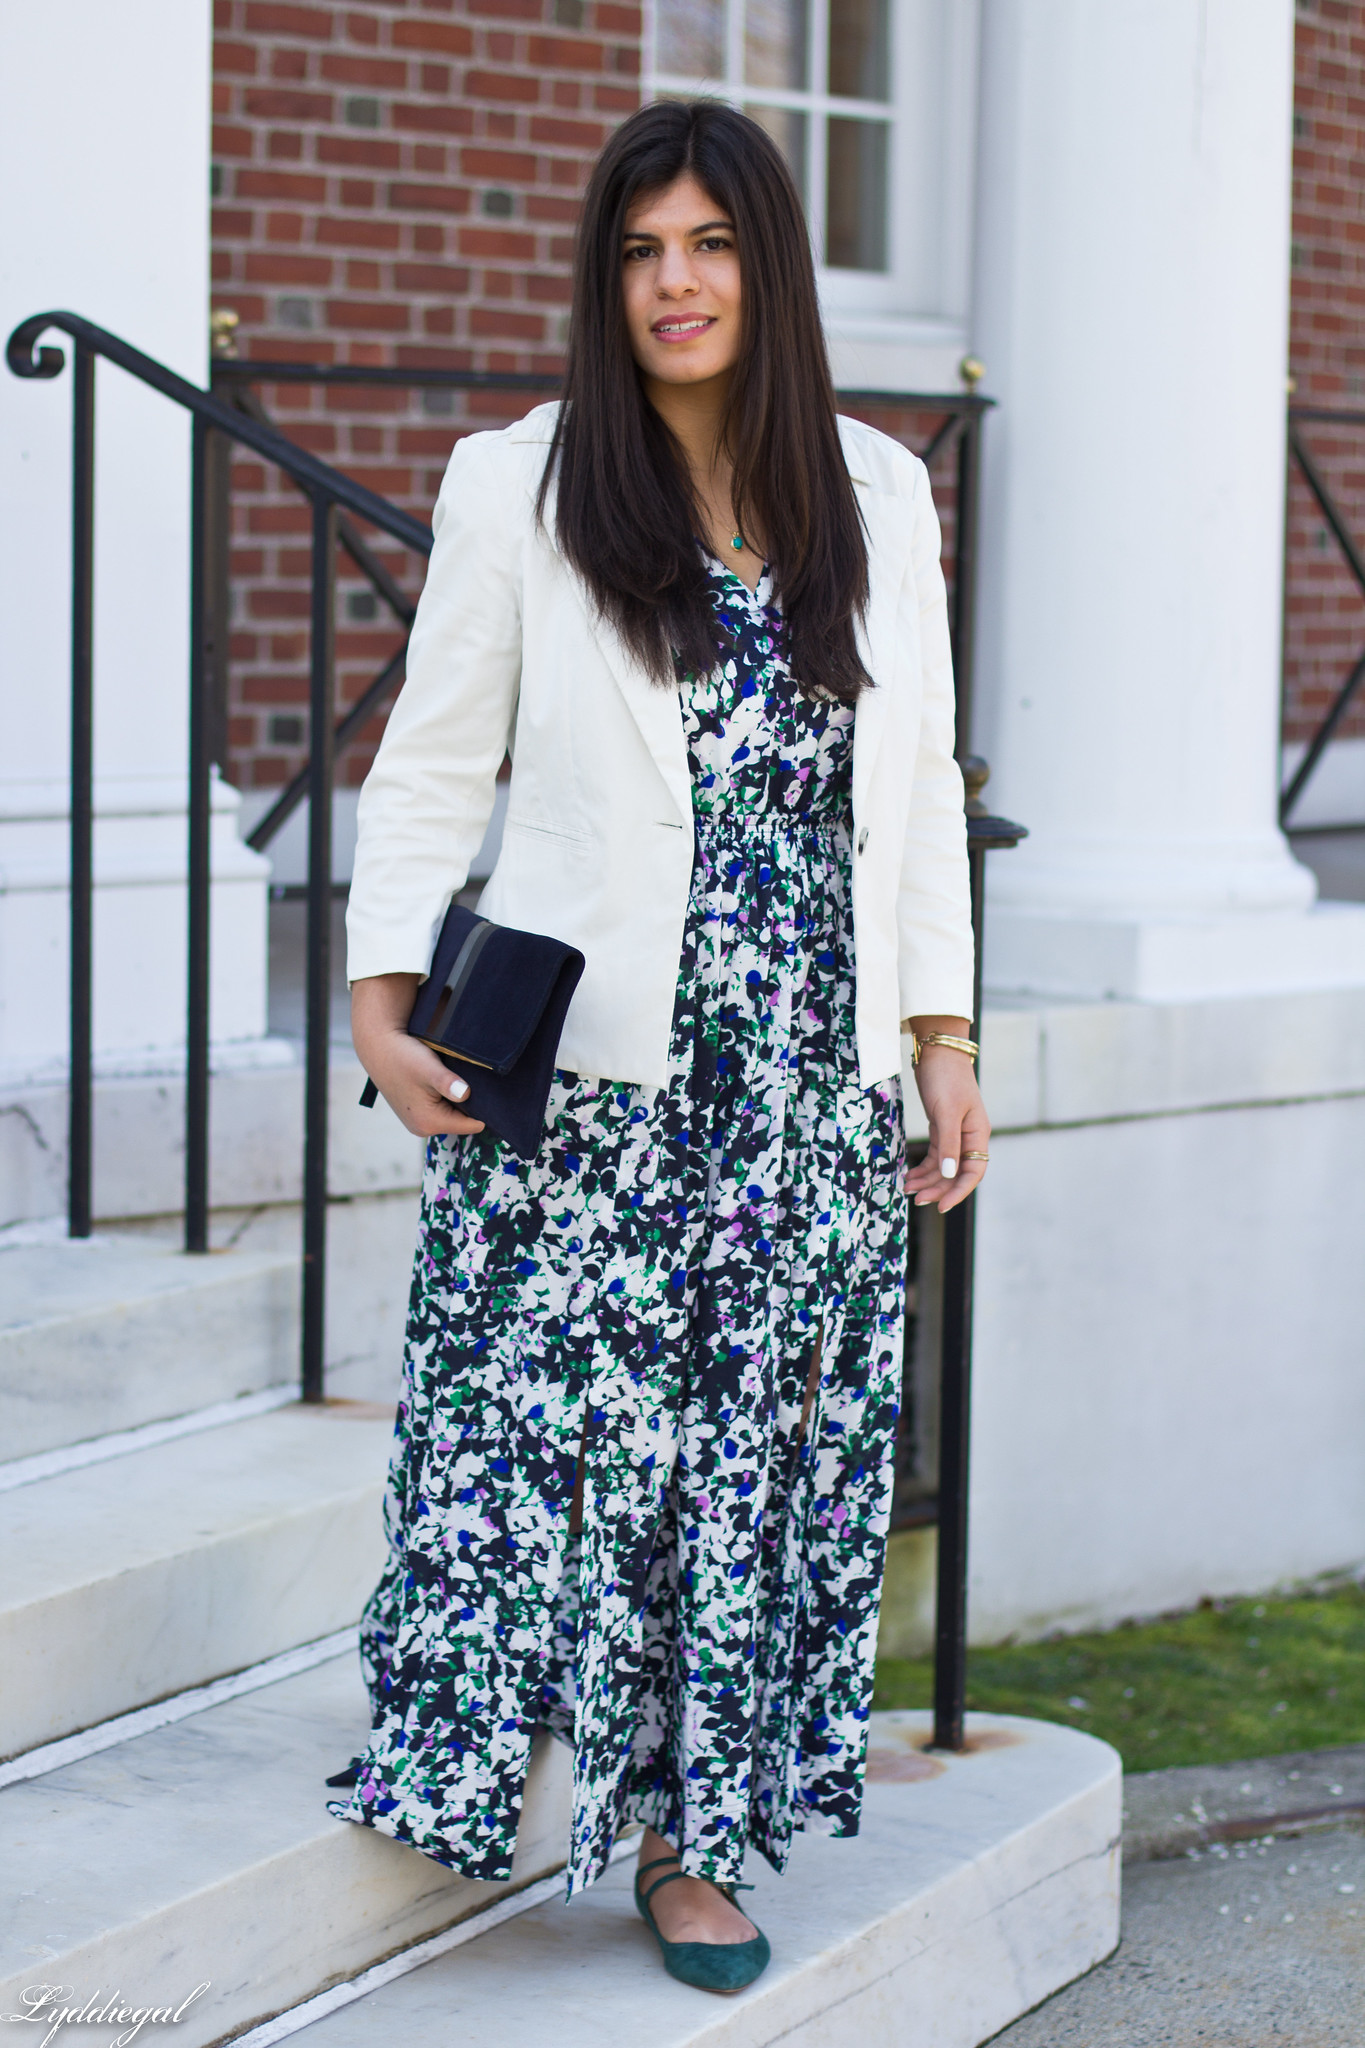 floral maxi dress, white blazer, green flats, clare v clutch-6.jpg